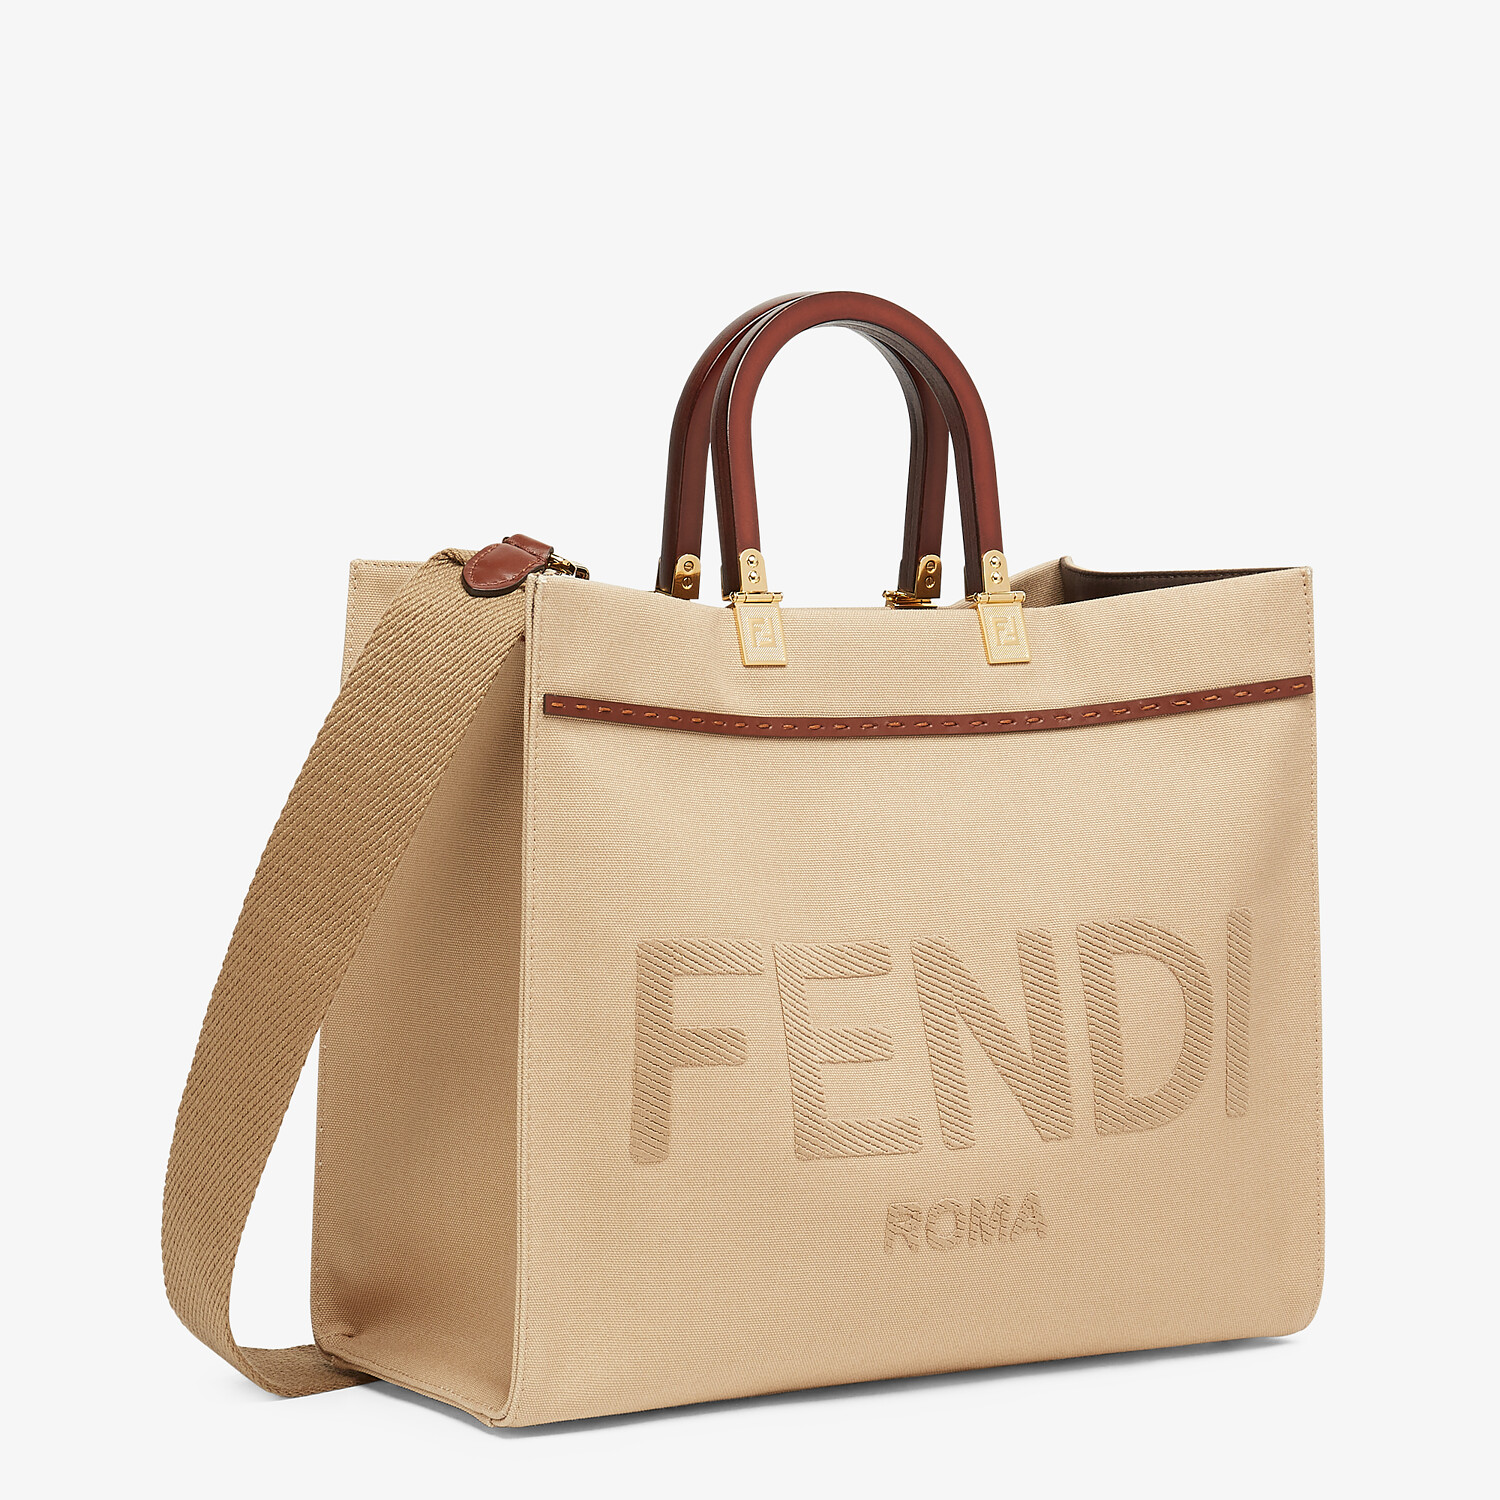 FENDI FENDI SUNSHINE MEDIUM - Beige canvas bag - view 3 detail